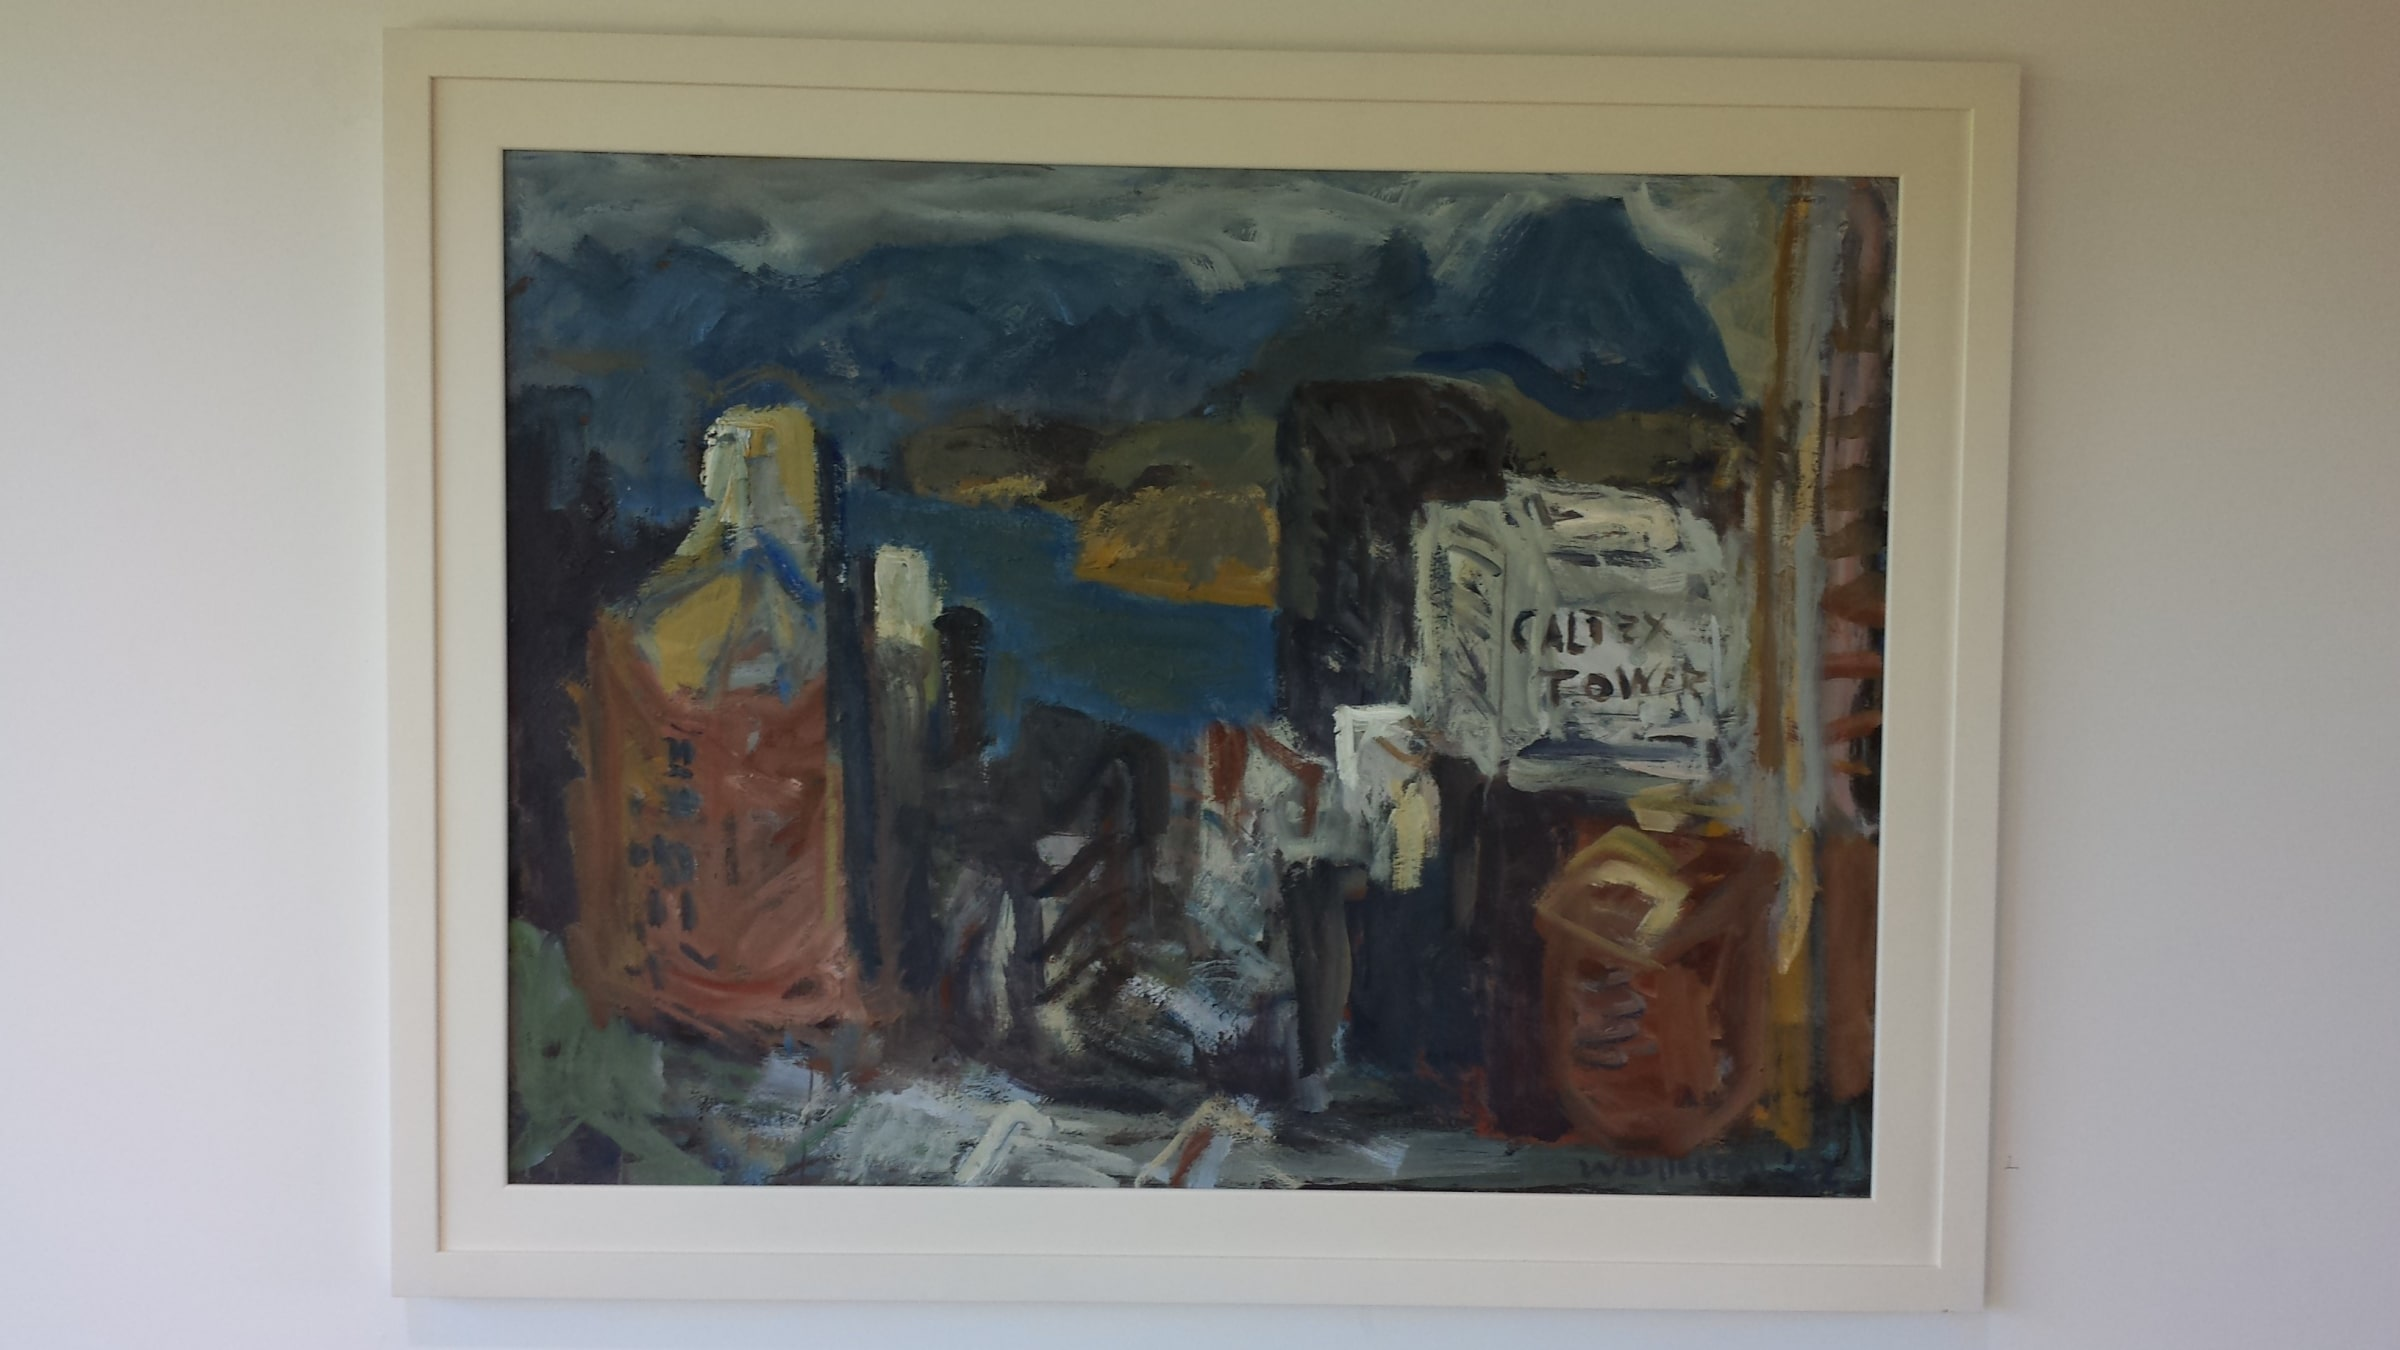 <span class=&#34;link fancybox-details-link&#34;><a href=&#34;/exhibitions/57/works/artworks5024/&#34;>View Detail Page</a></span><div class=&#34;signed_and_dated&#34;>Signed</div> <div class=&#34;medium&#34;>Oil on board</div> <div class=&#34;dimensions&#34;>35.4 x 47.2 in<br />90 x 120 cm</div>